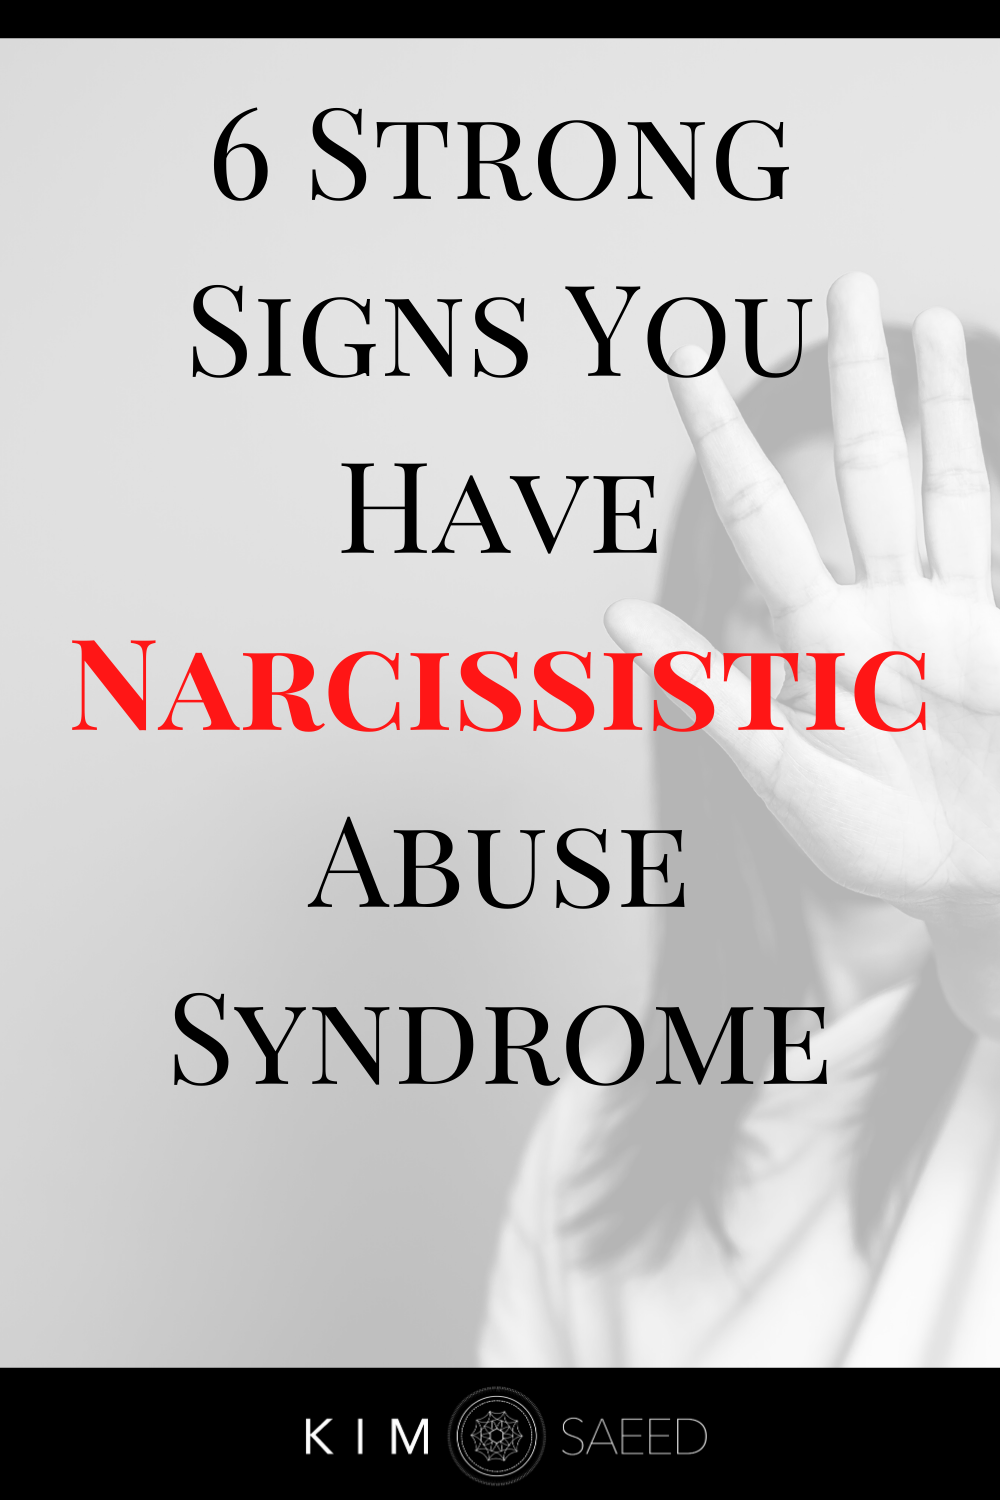 6 Strong Signs You Have Narcissistic Abuse Syndrom